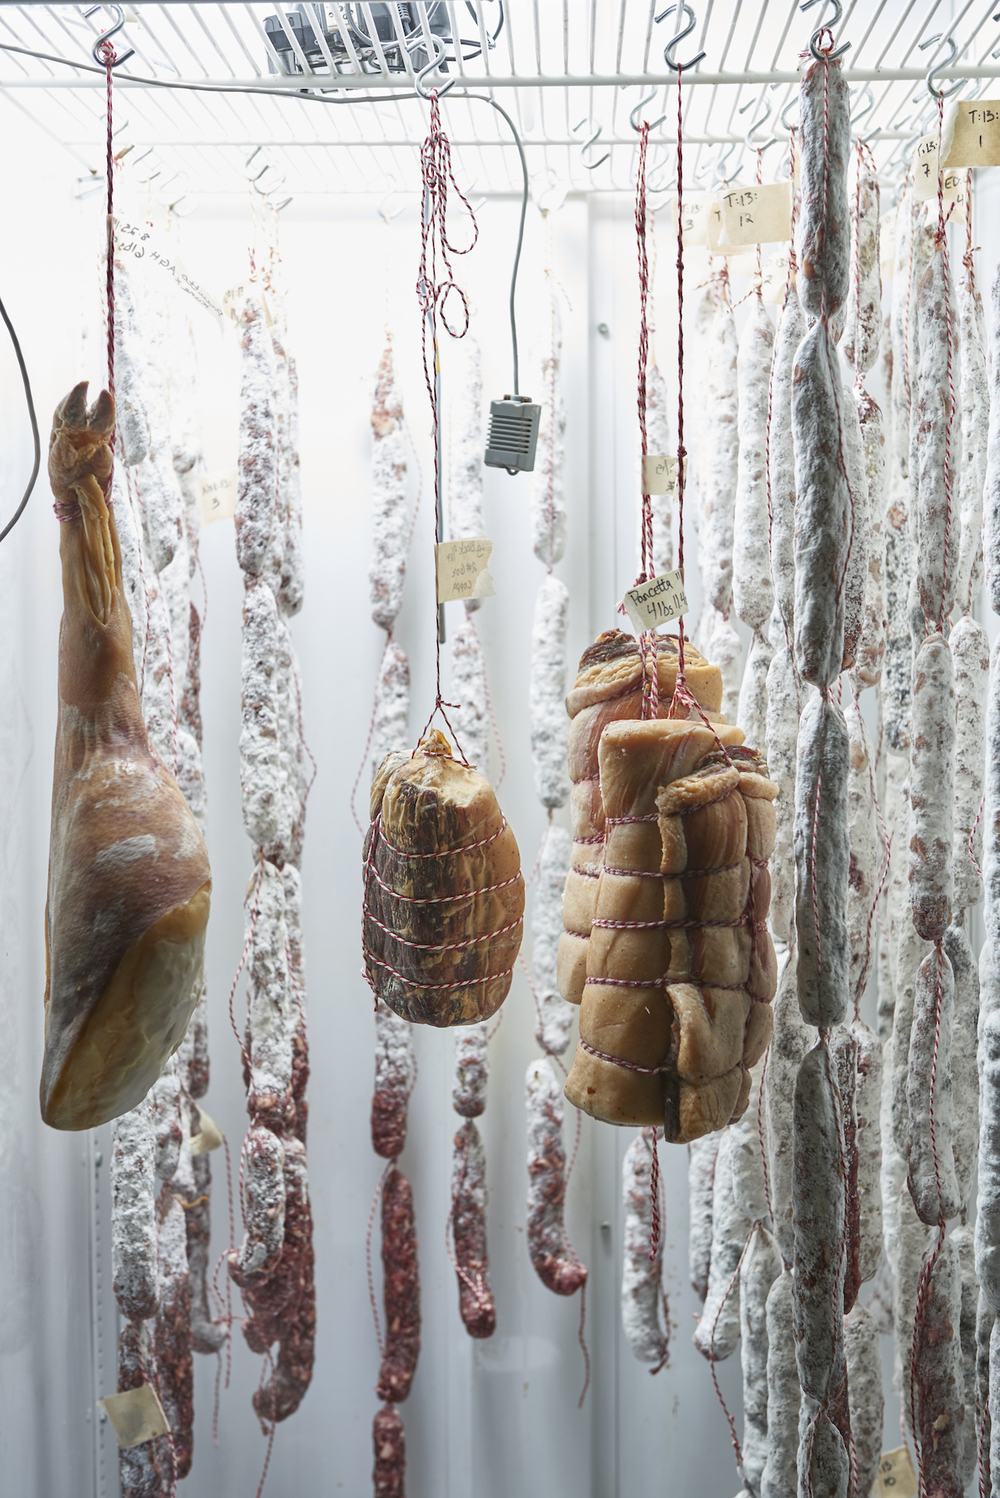 North Country Charcuterie product hangs in the curing chamber at The Commissary